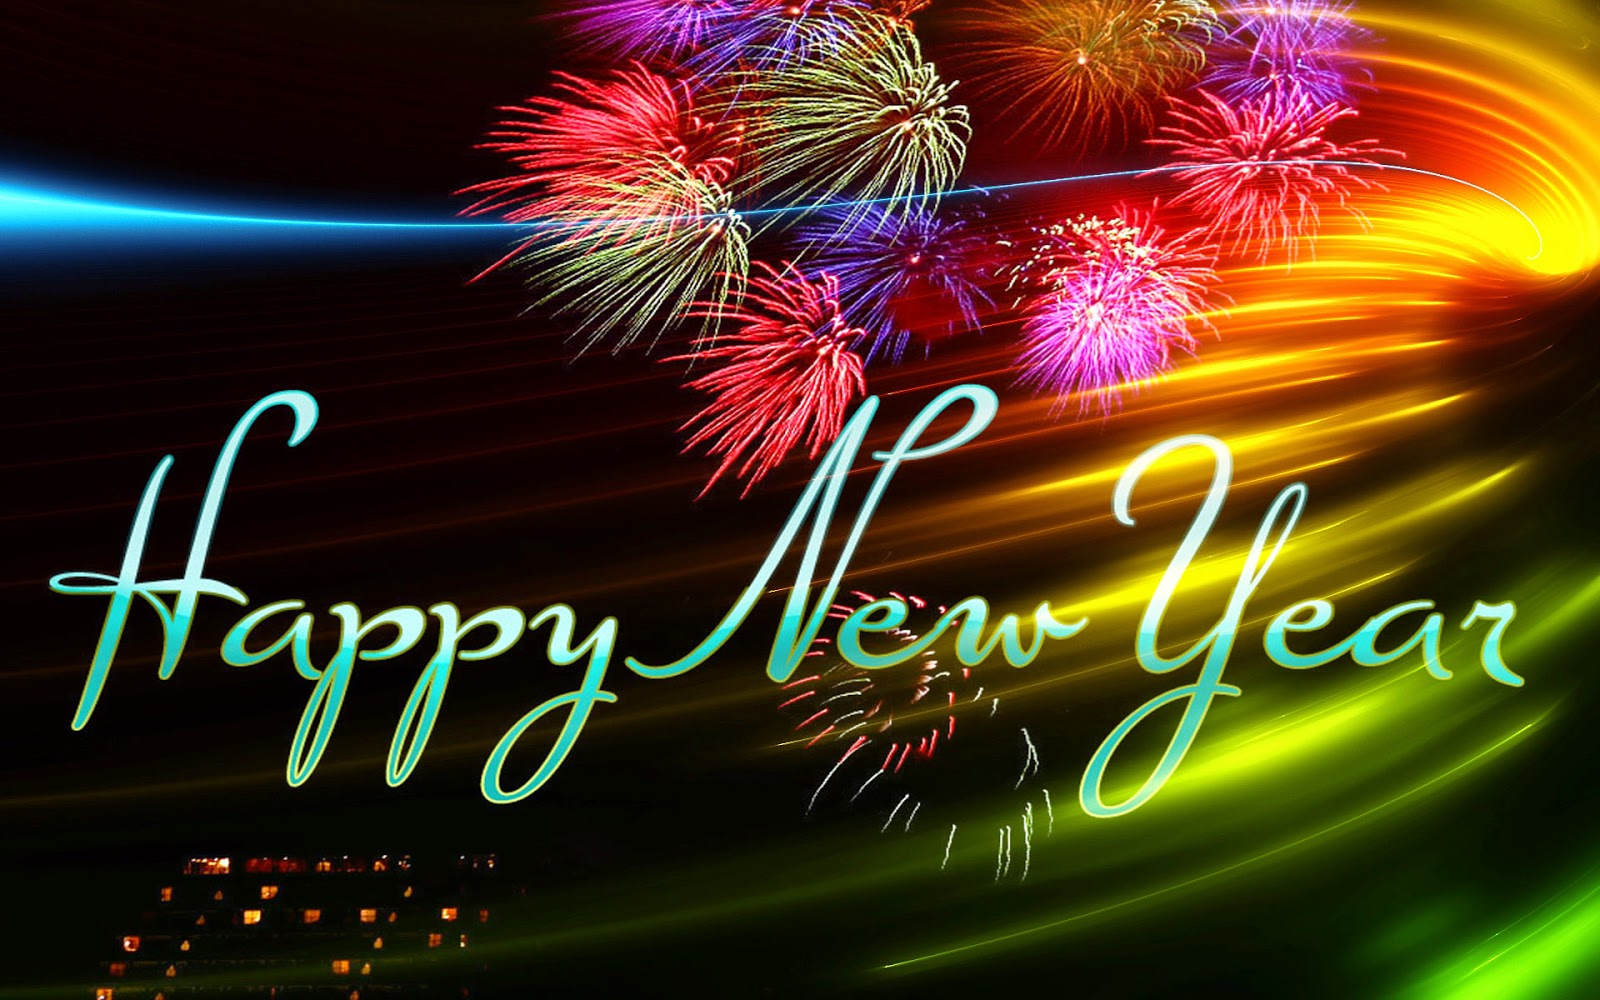 happy new year 2016 hd images wallpapers free download